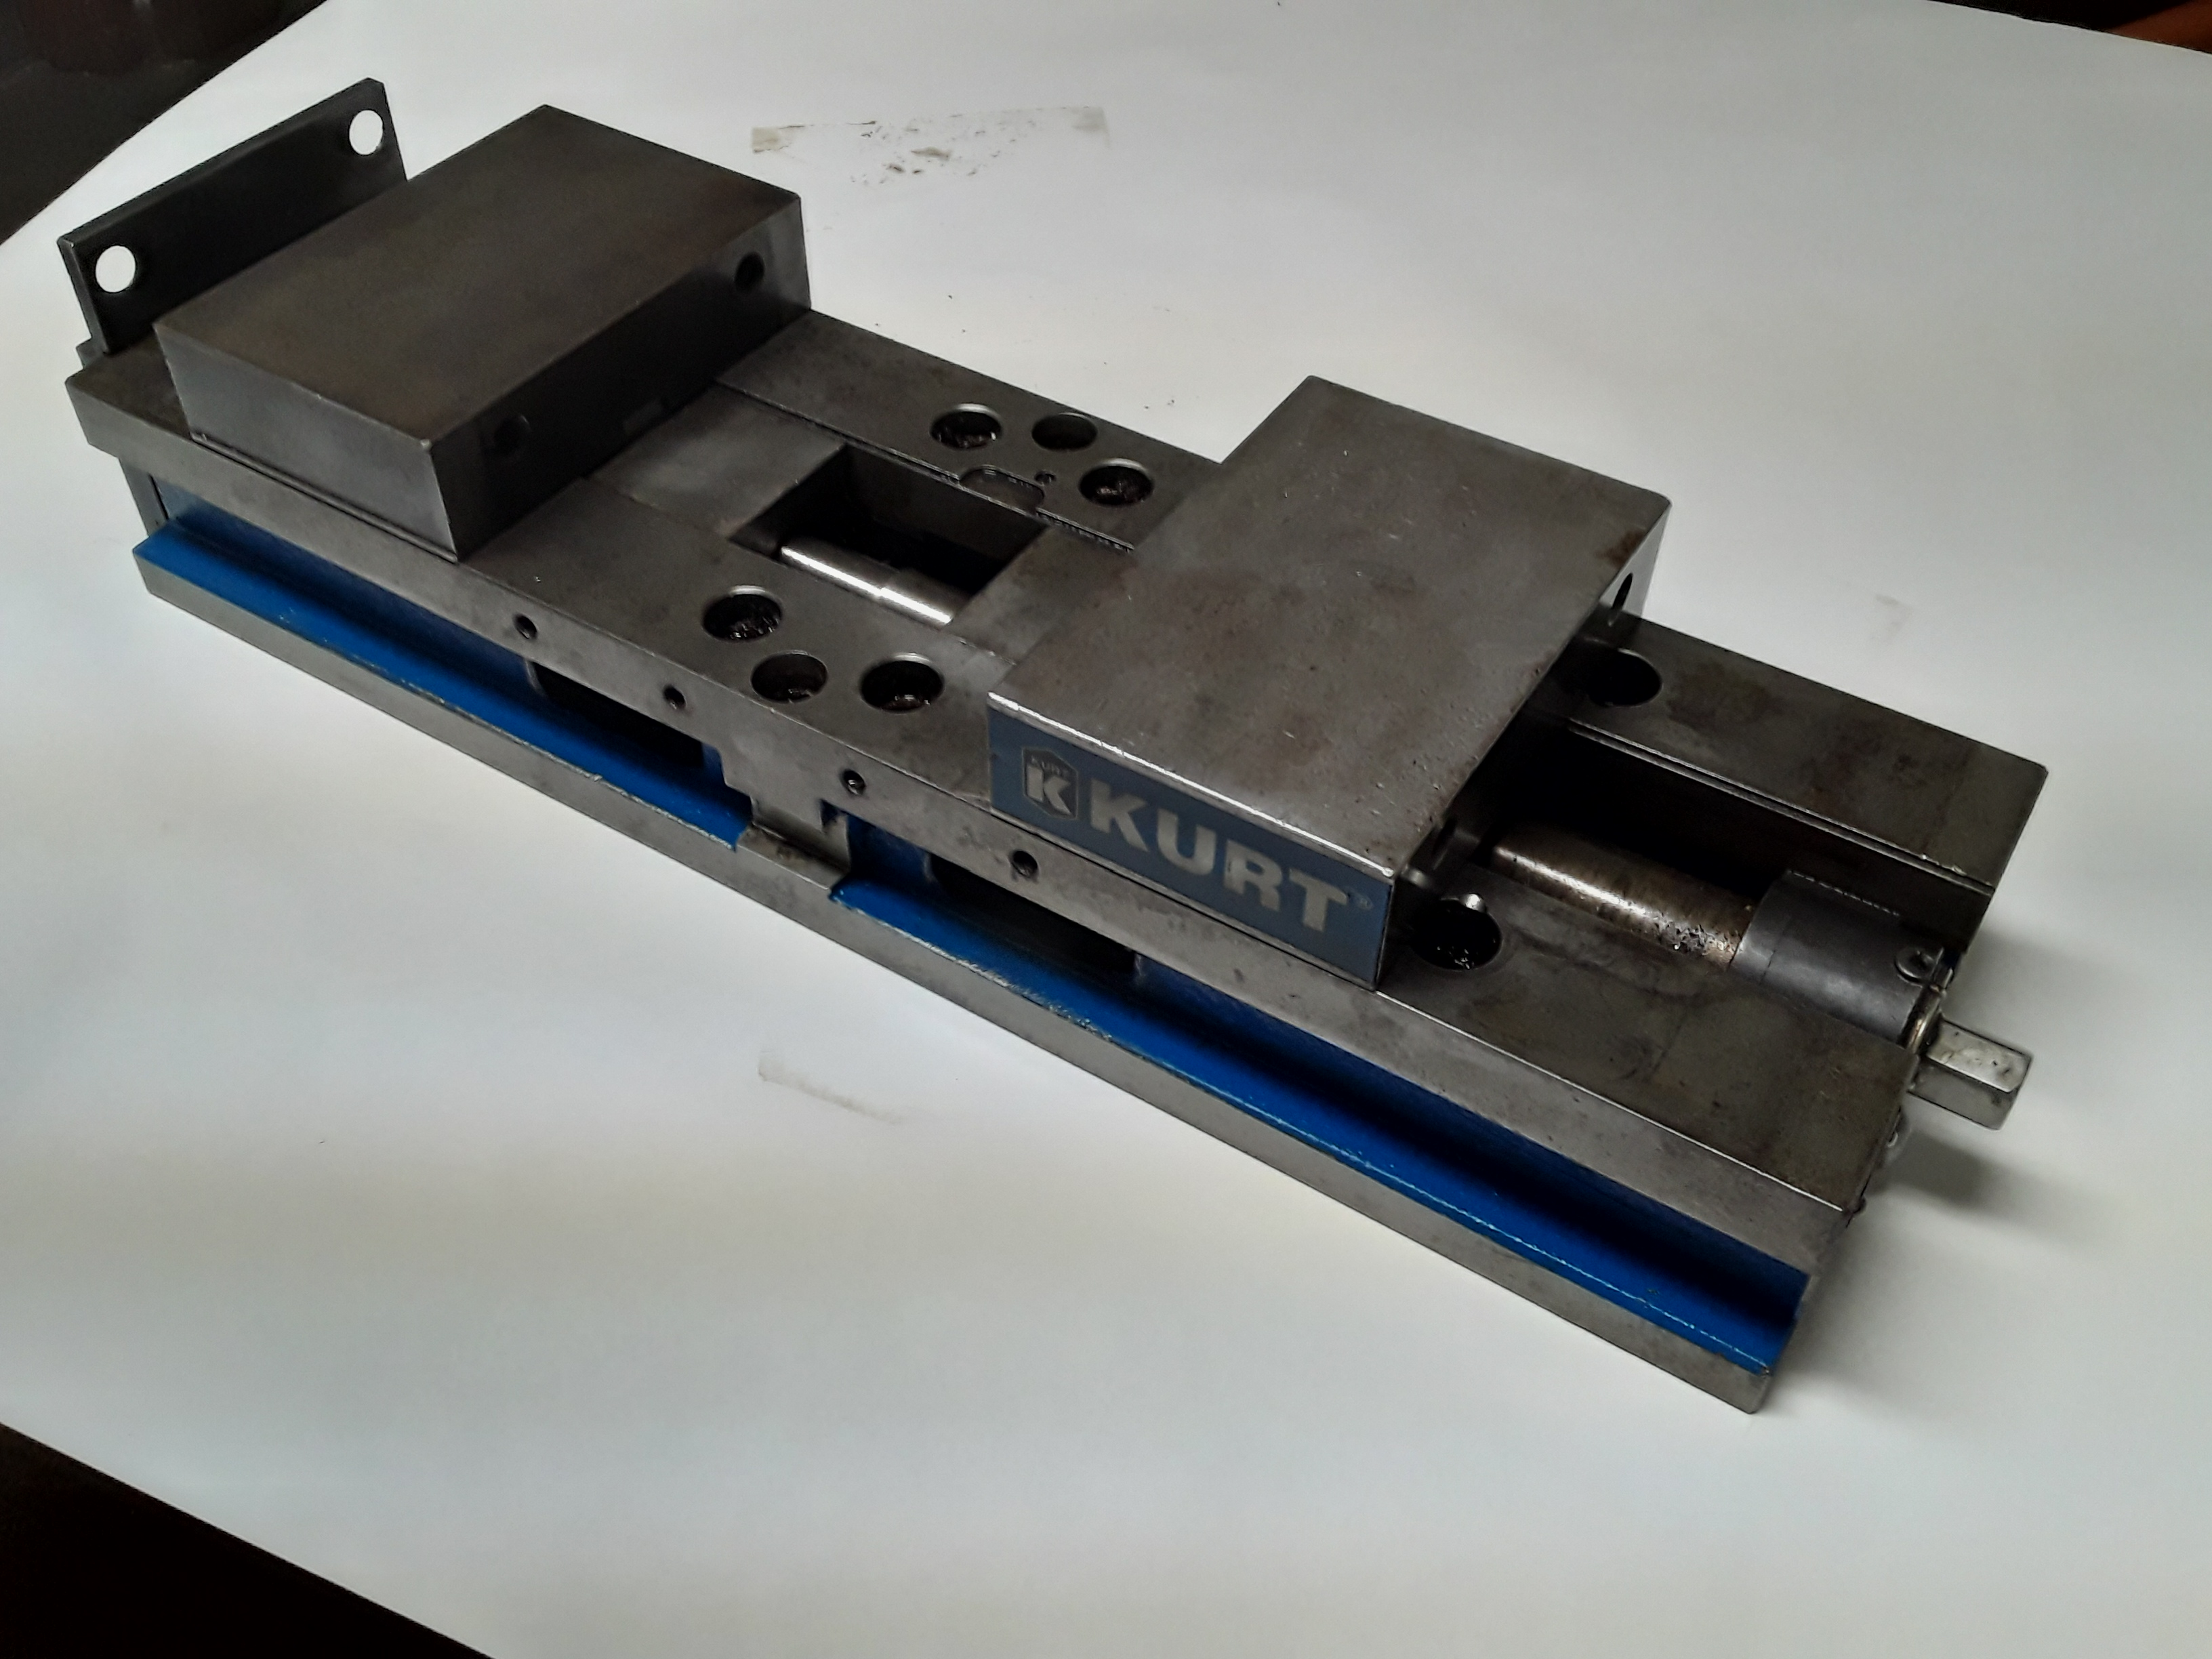 1 - PREOWNED KURT 6 in  MANUAL DOUBLE STATION MACHINE VISE, <br>MODEL HDLM6, S/N 2132